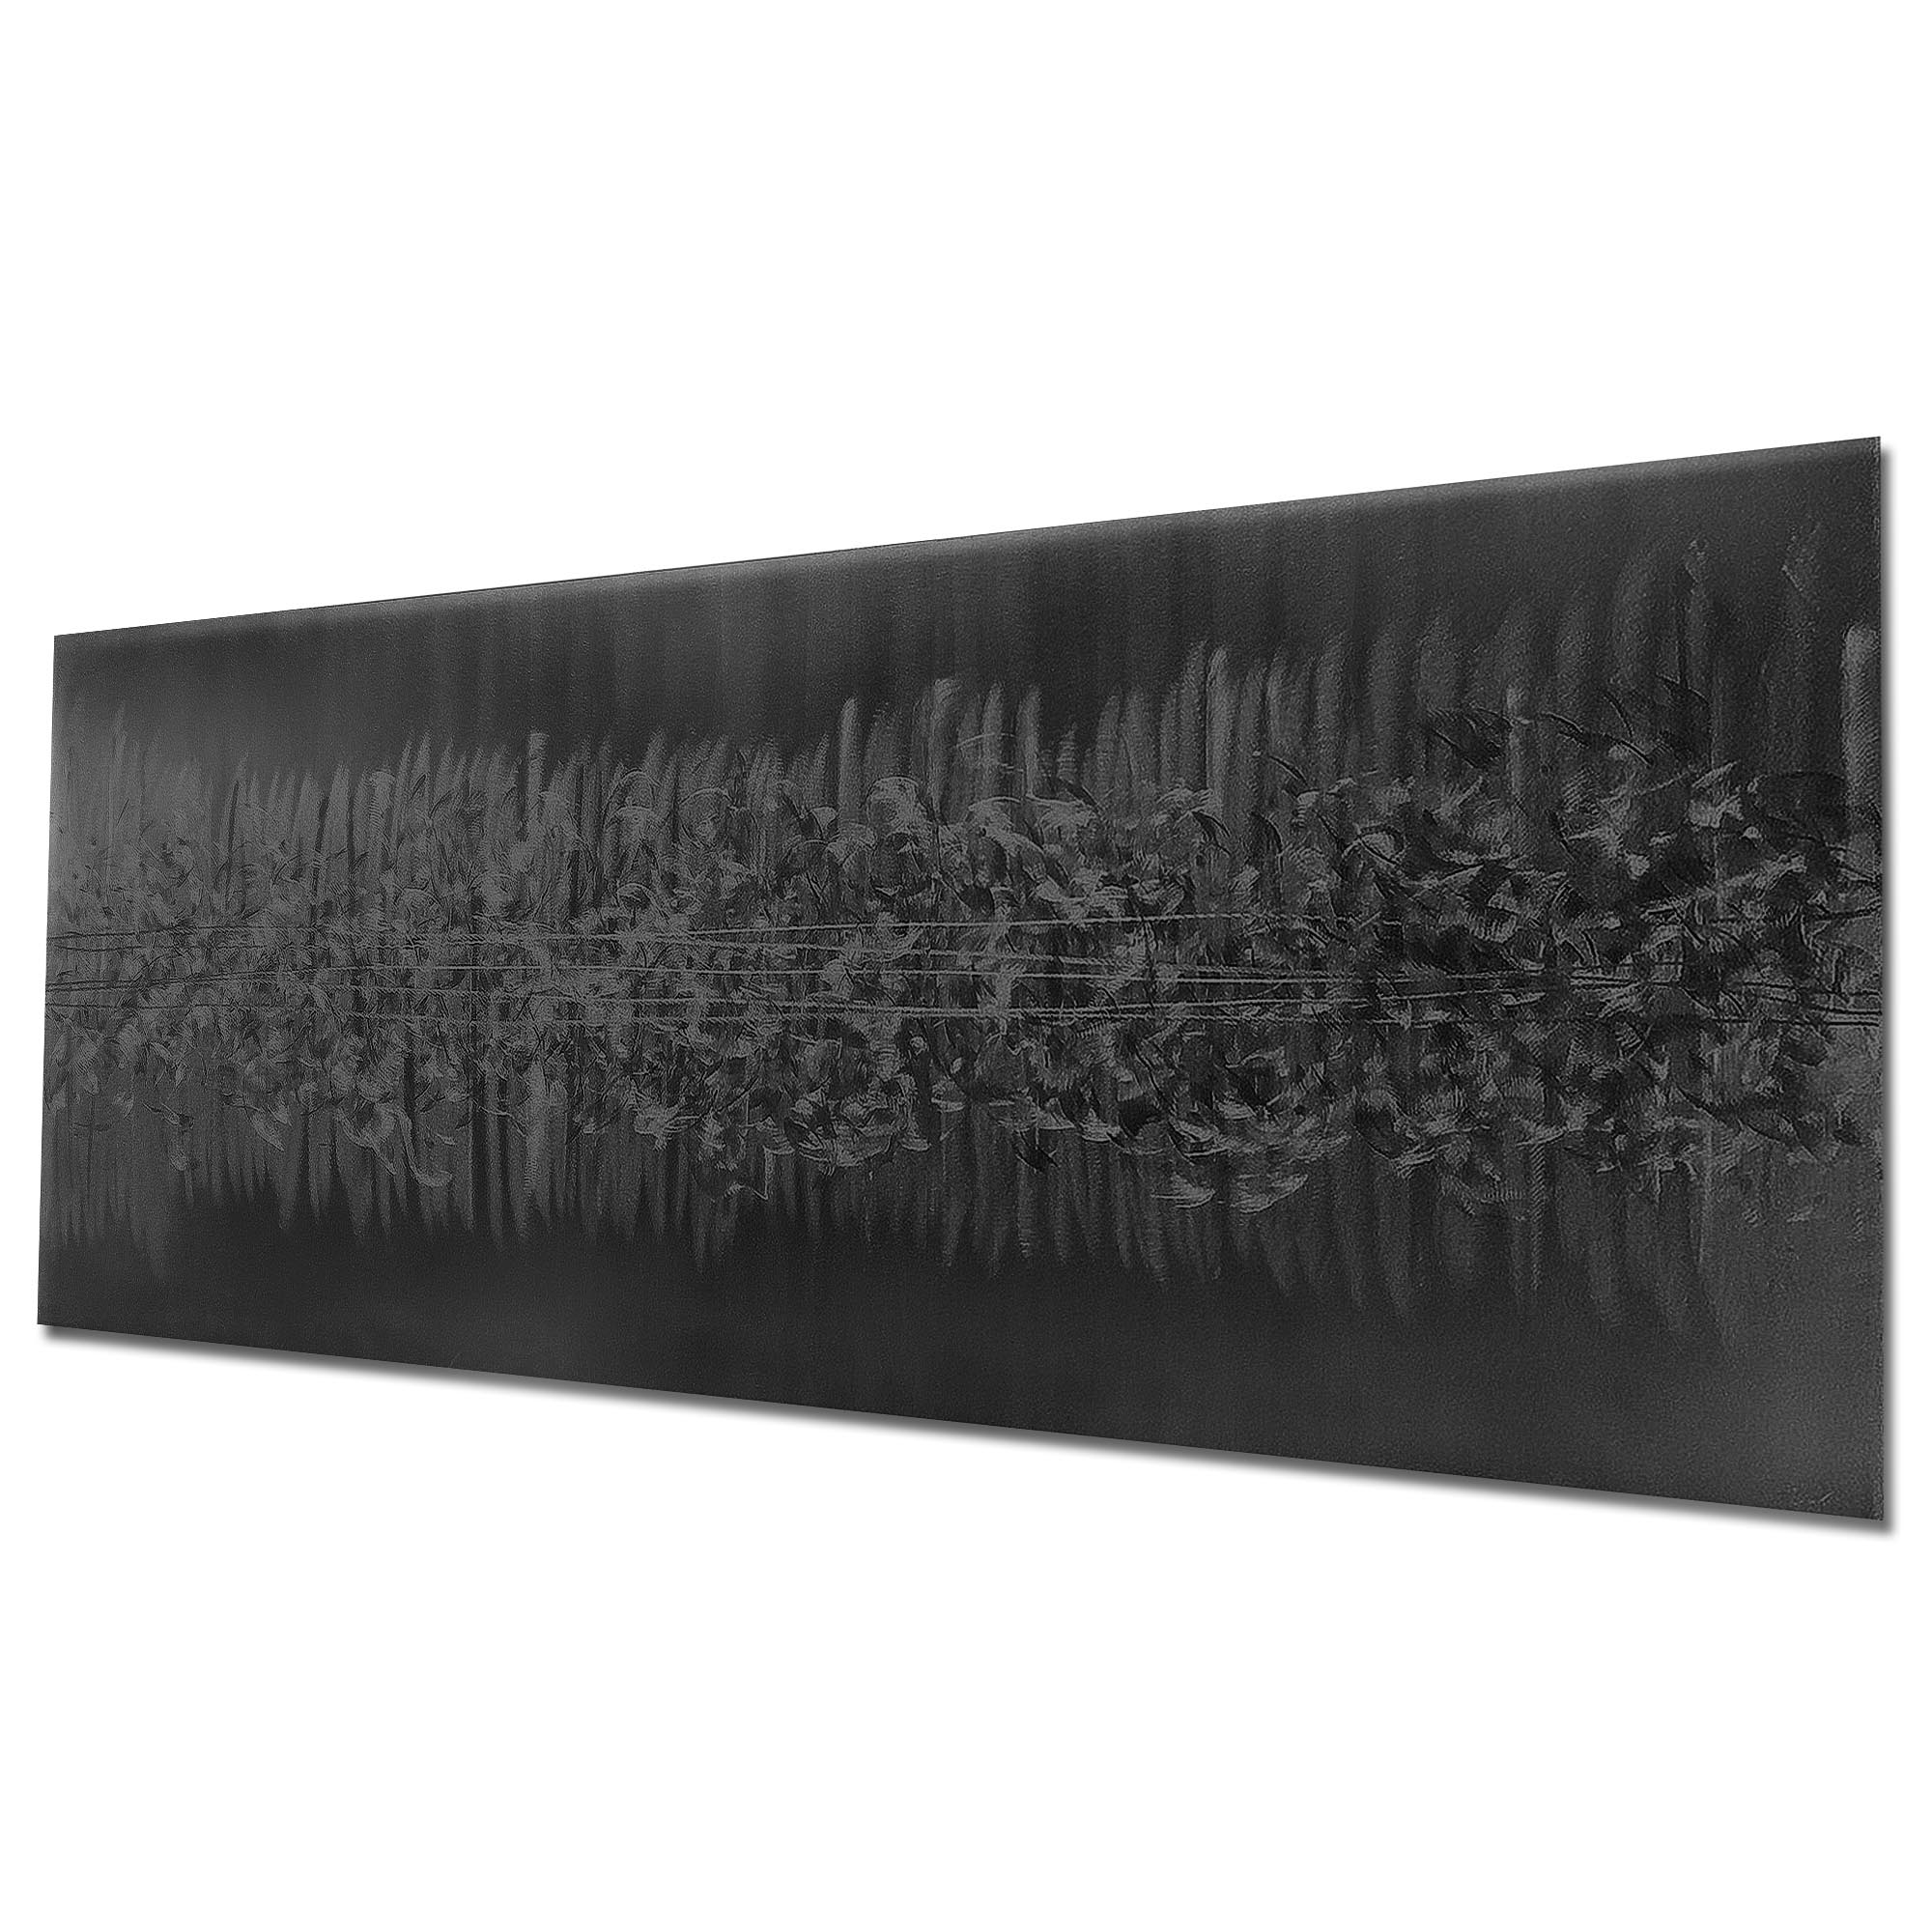 Static Black by Helena Martin - Original Abstract Art on Ground and Painted Metal - Image 3